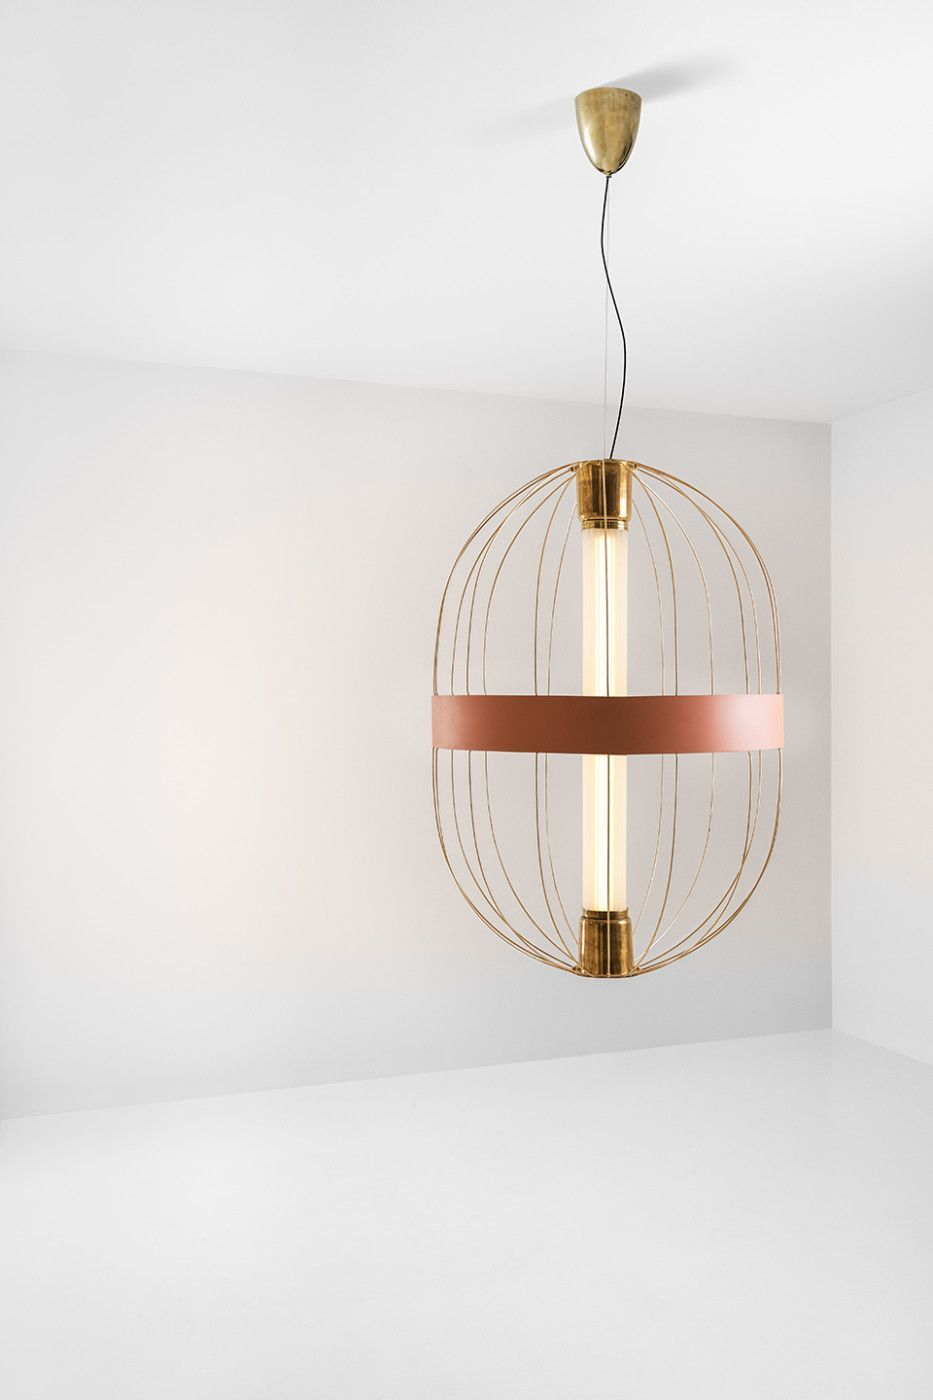 Suspension Lighting Solutions For Any Contemporary Room Contemporary Ceiling Lamp Pendant Ceiling Lamp Suspension Lamp